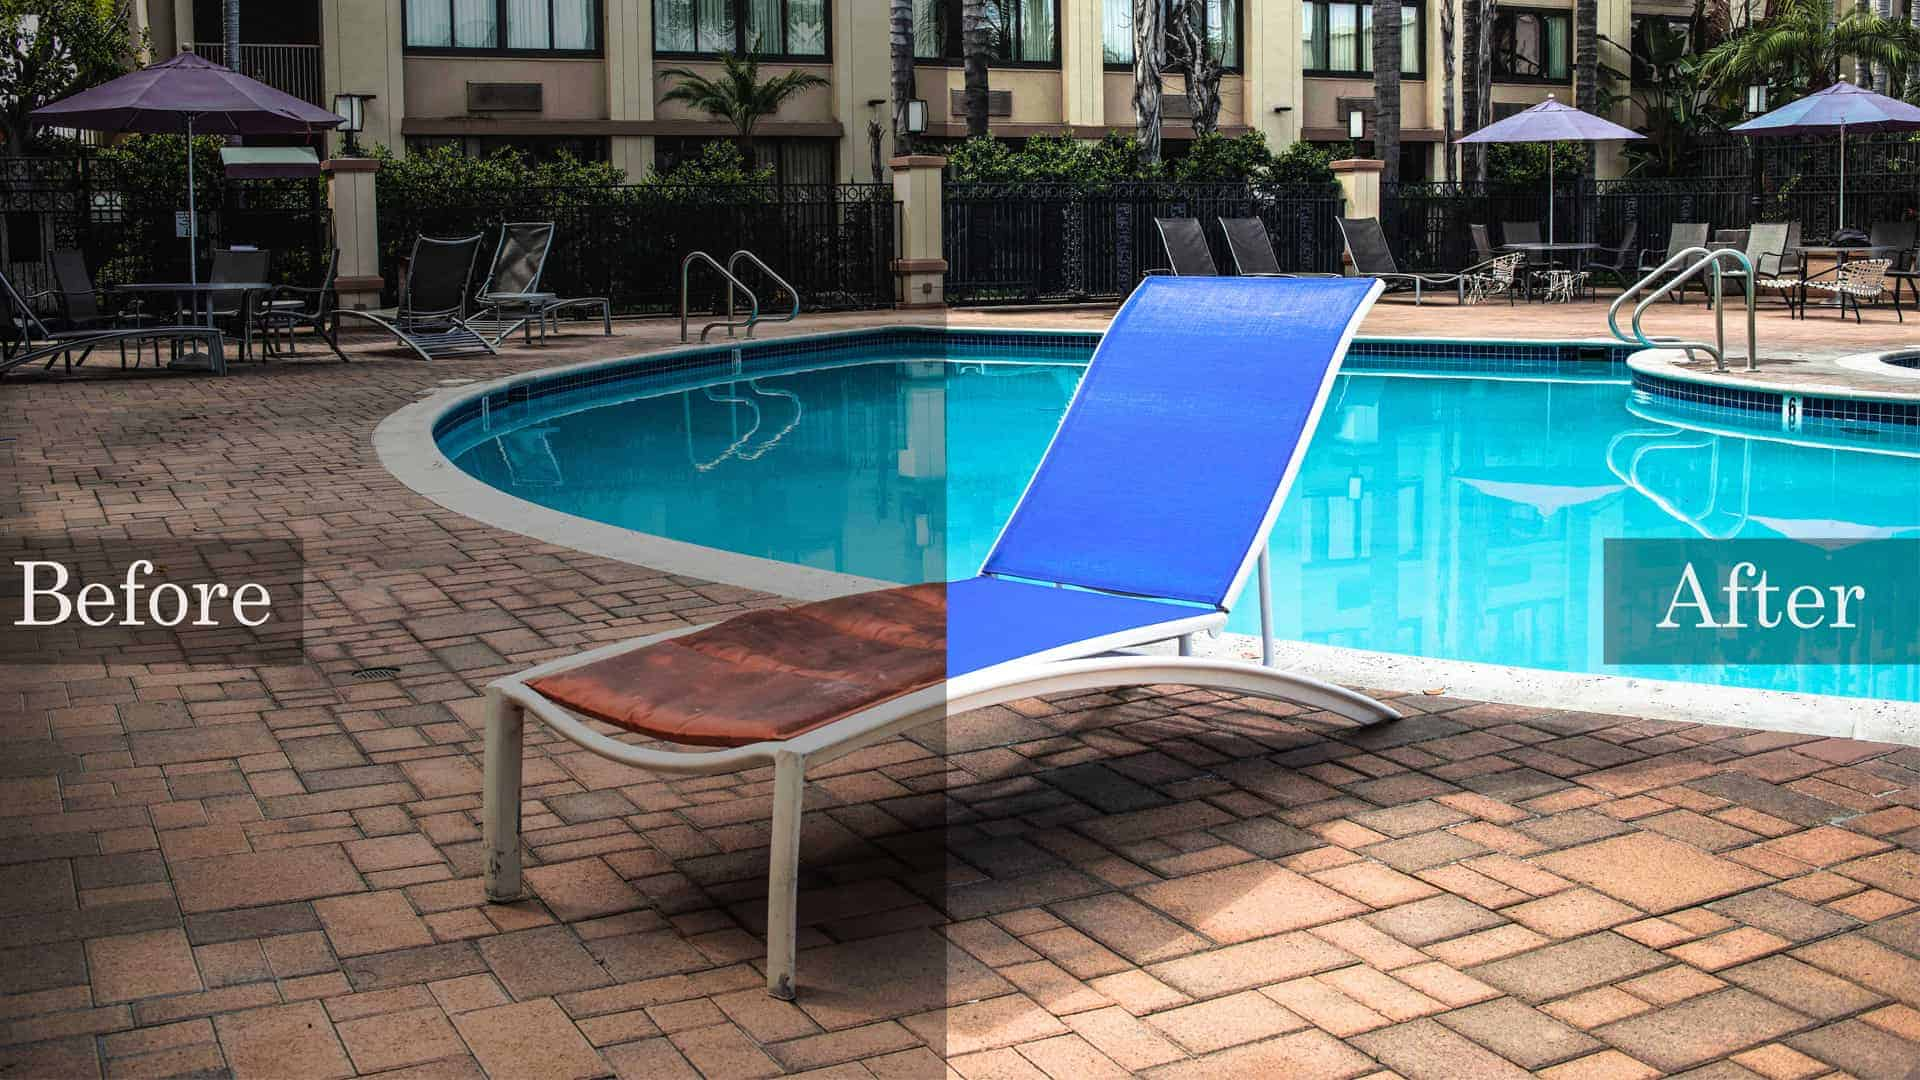 Before and after of a chaise lounge in front of a hotel pool